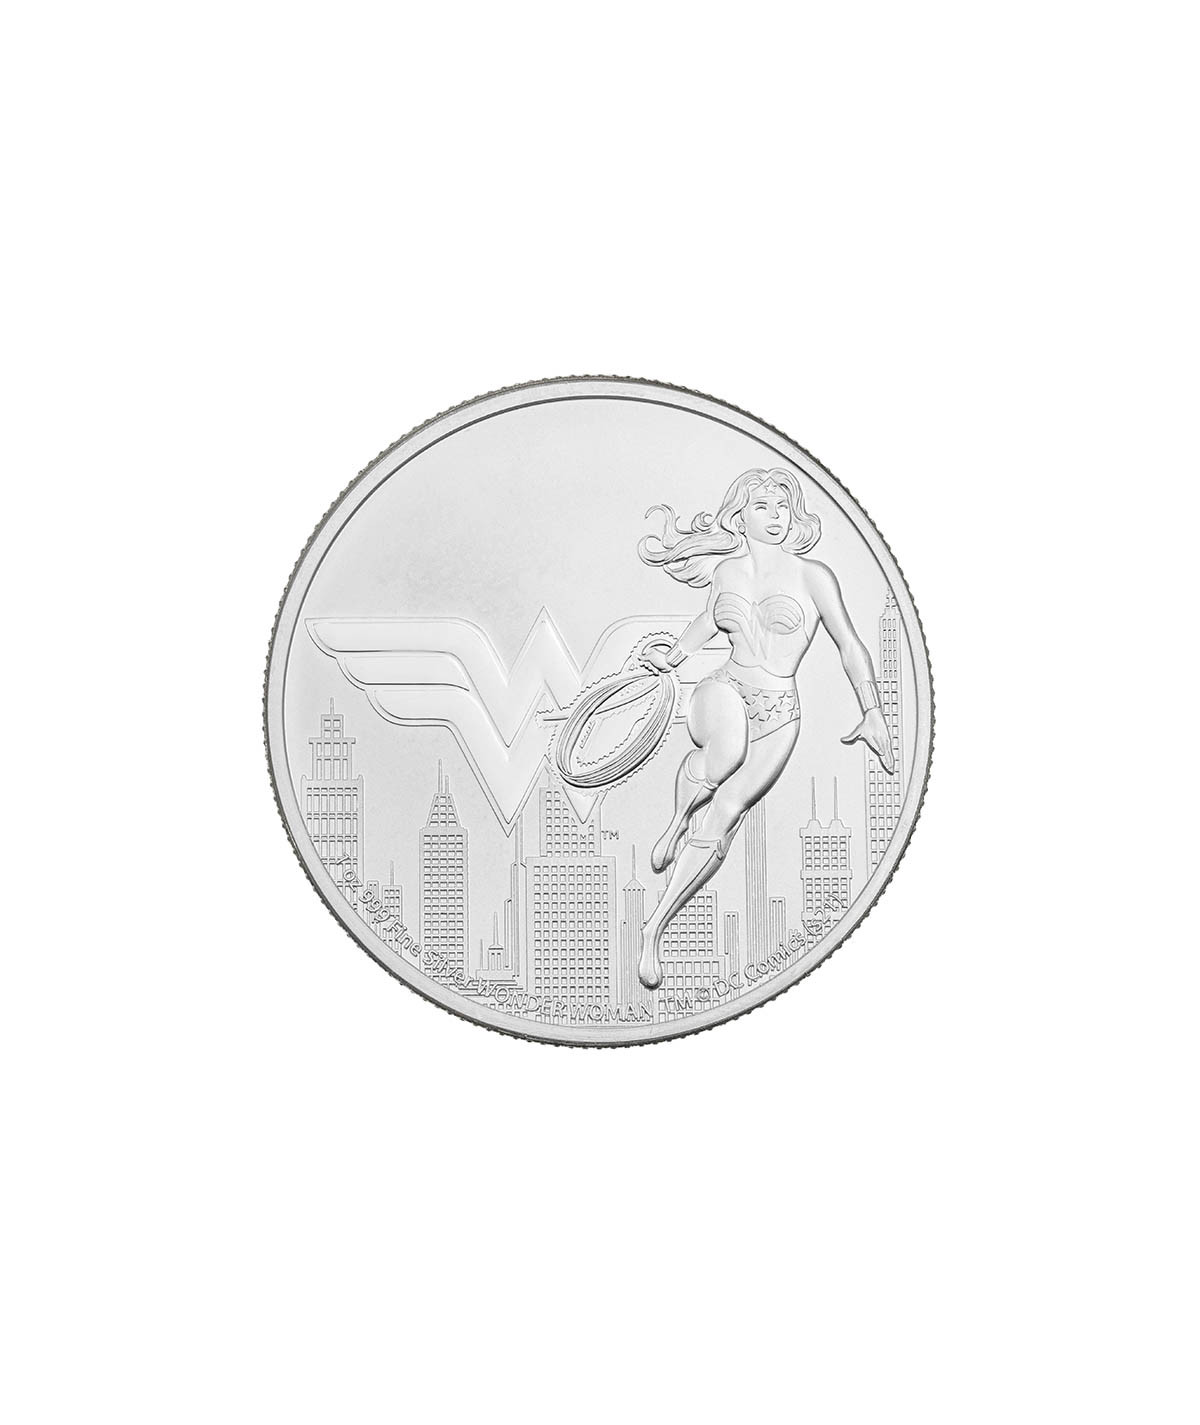 1oz Wonder Woman Silver Coin from 2021 - DC Comics Justice